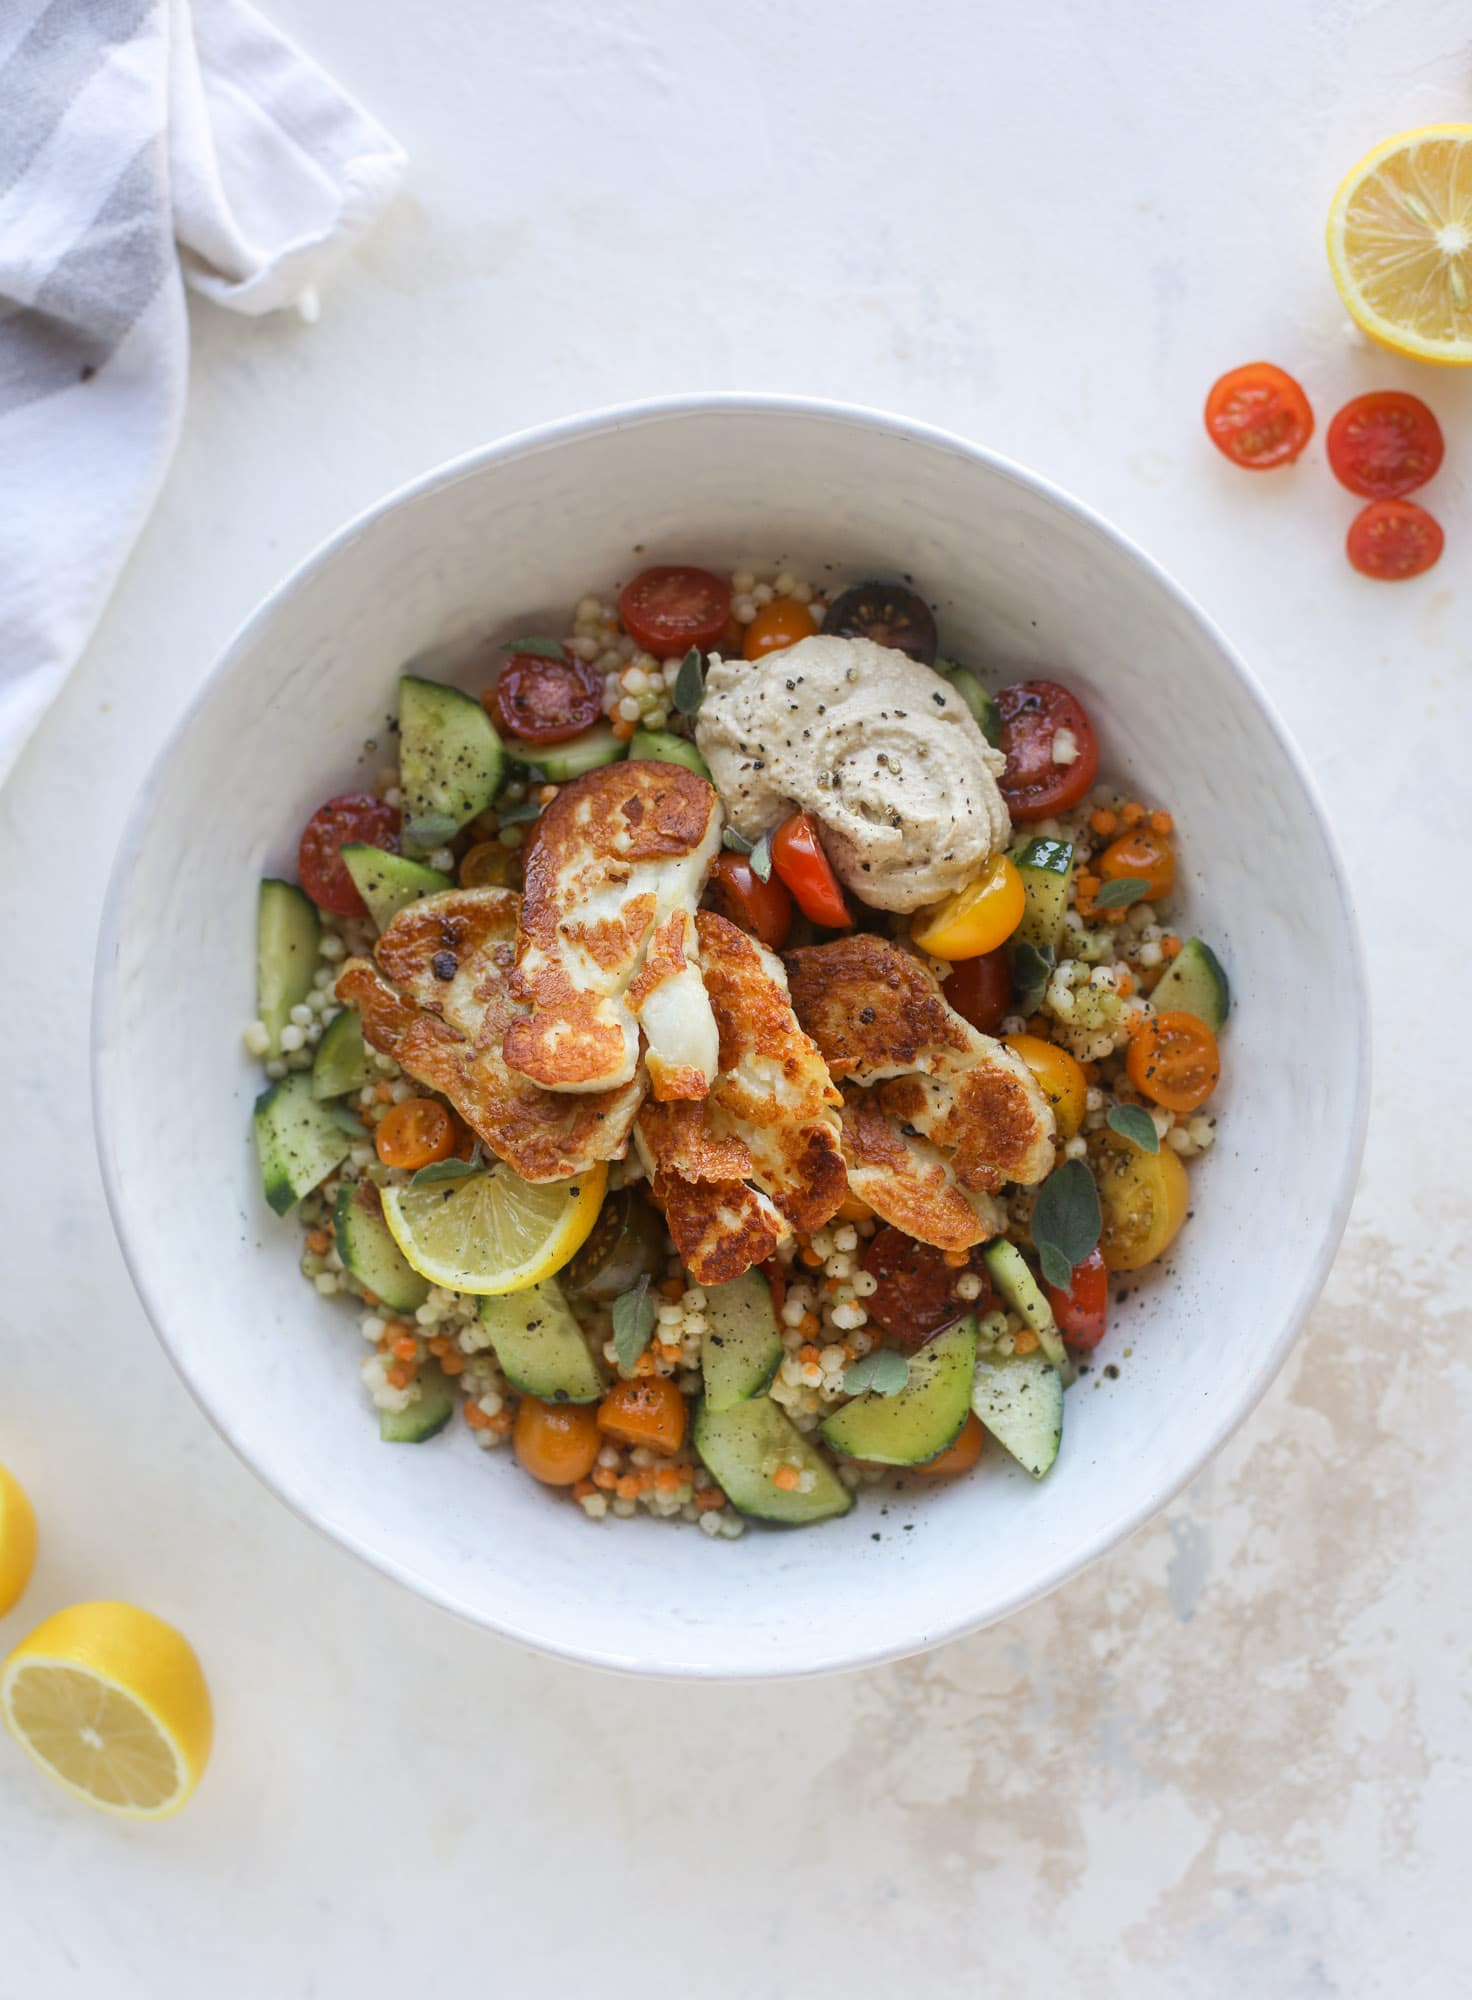 I am obsessed with these haulloumi hummus bowls for lunch or dinner. Couscous, veggies, crispy halloumi cheese and hummus with lots of lemon. Yum! I howsweeteats.com #halloumi #hummus